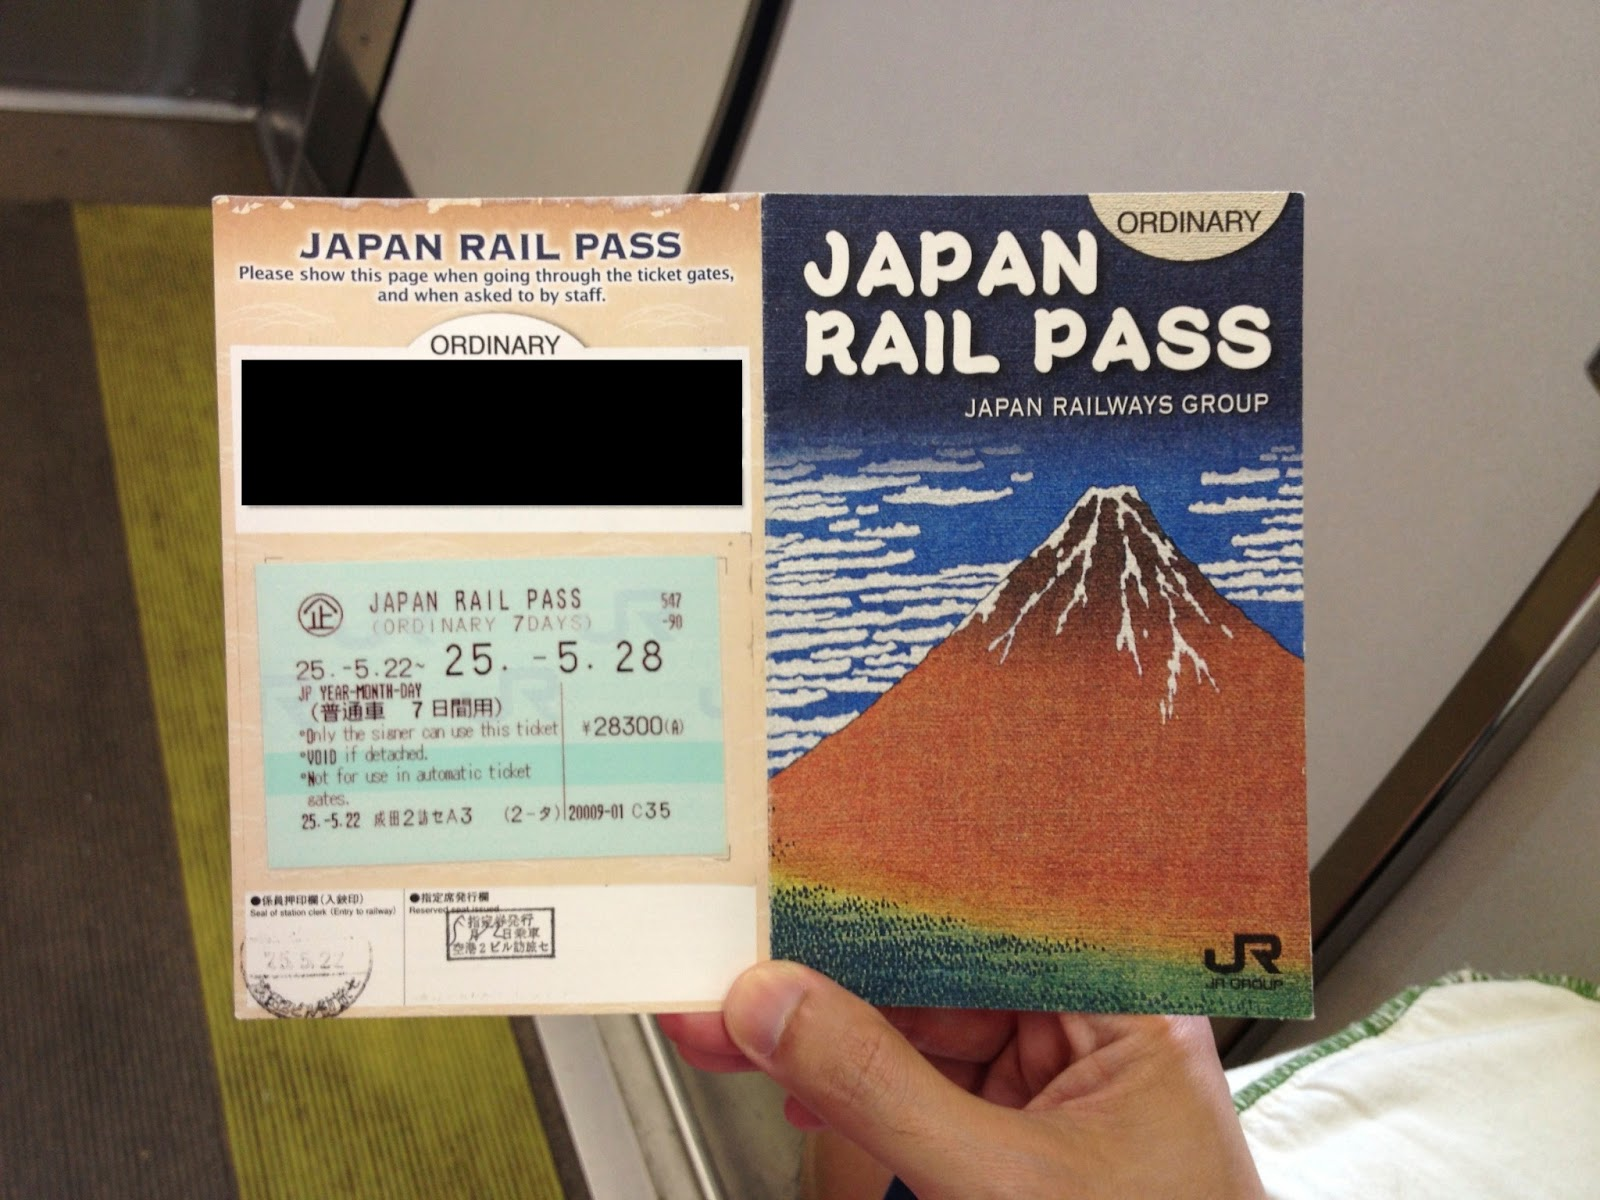 The First Day Of The Pstarts When You Activate It And Ends On Midnight Of The 7th Day It Includes The Use Of The Narita Express Nex And It Makes The